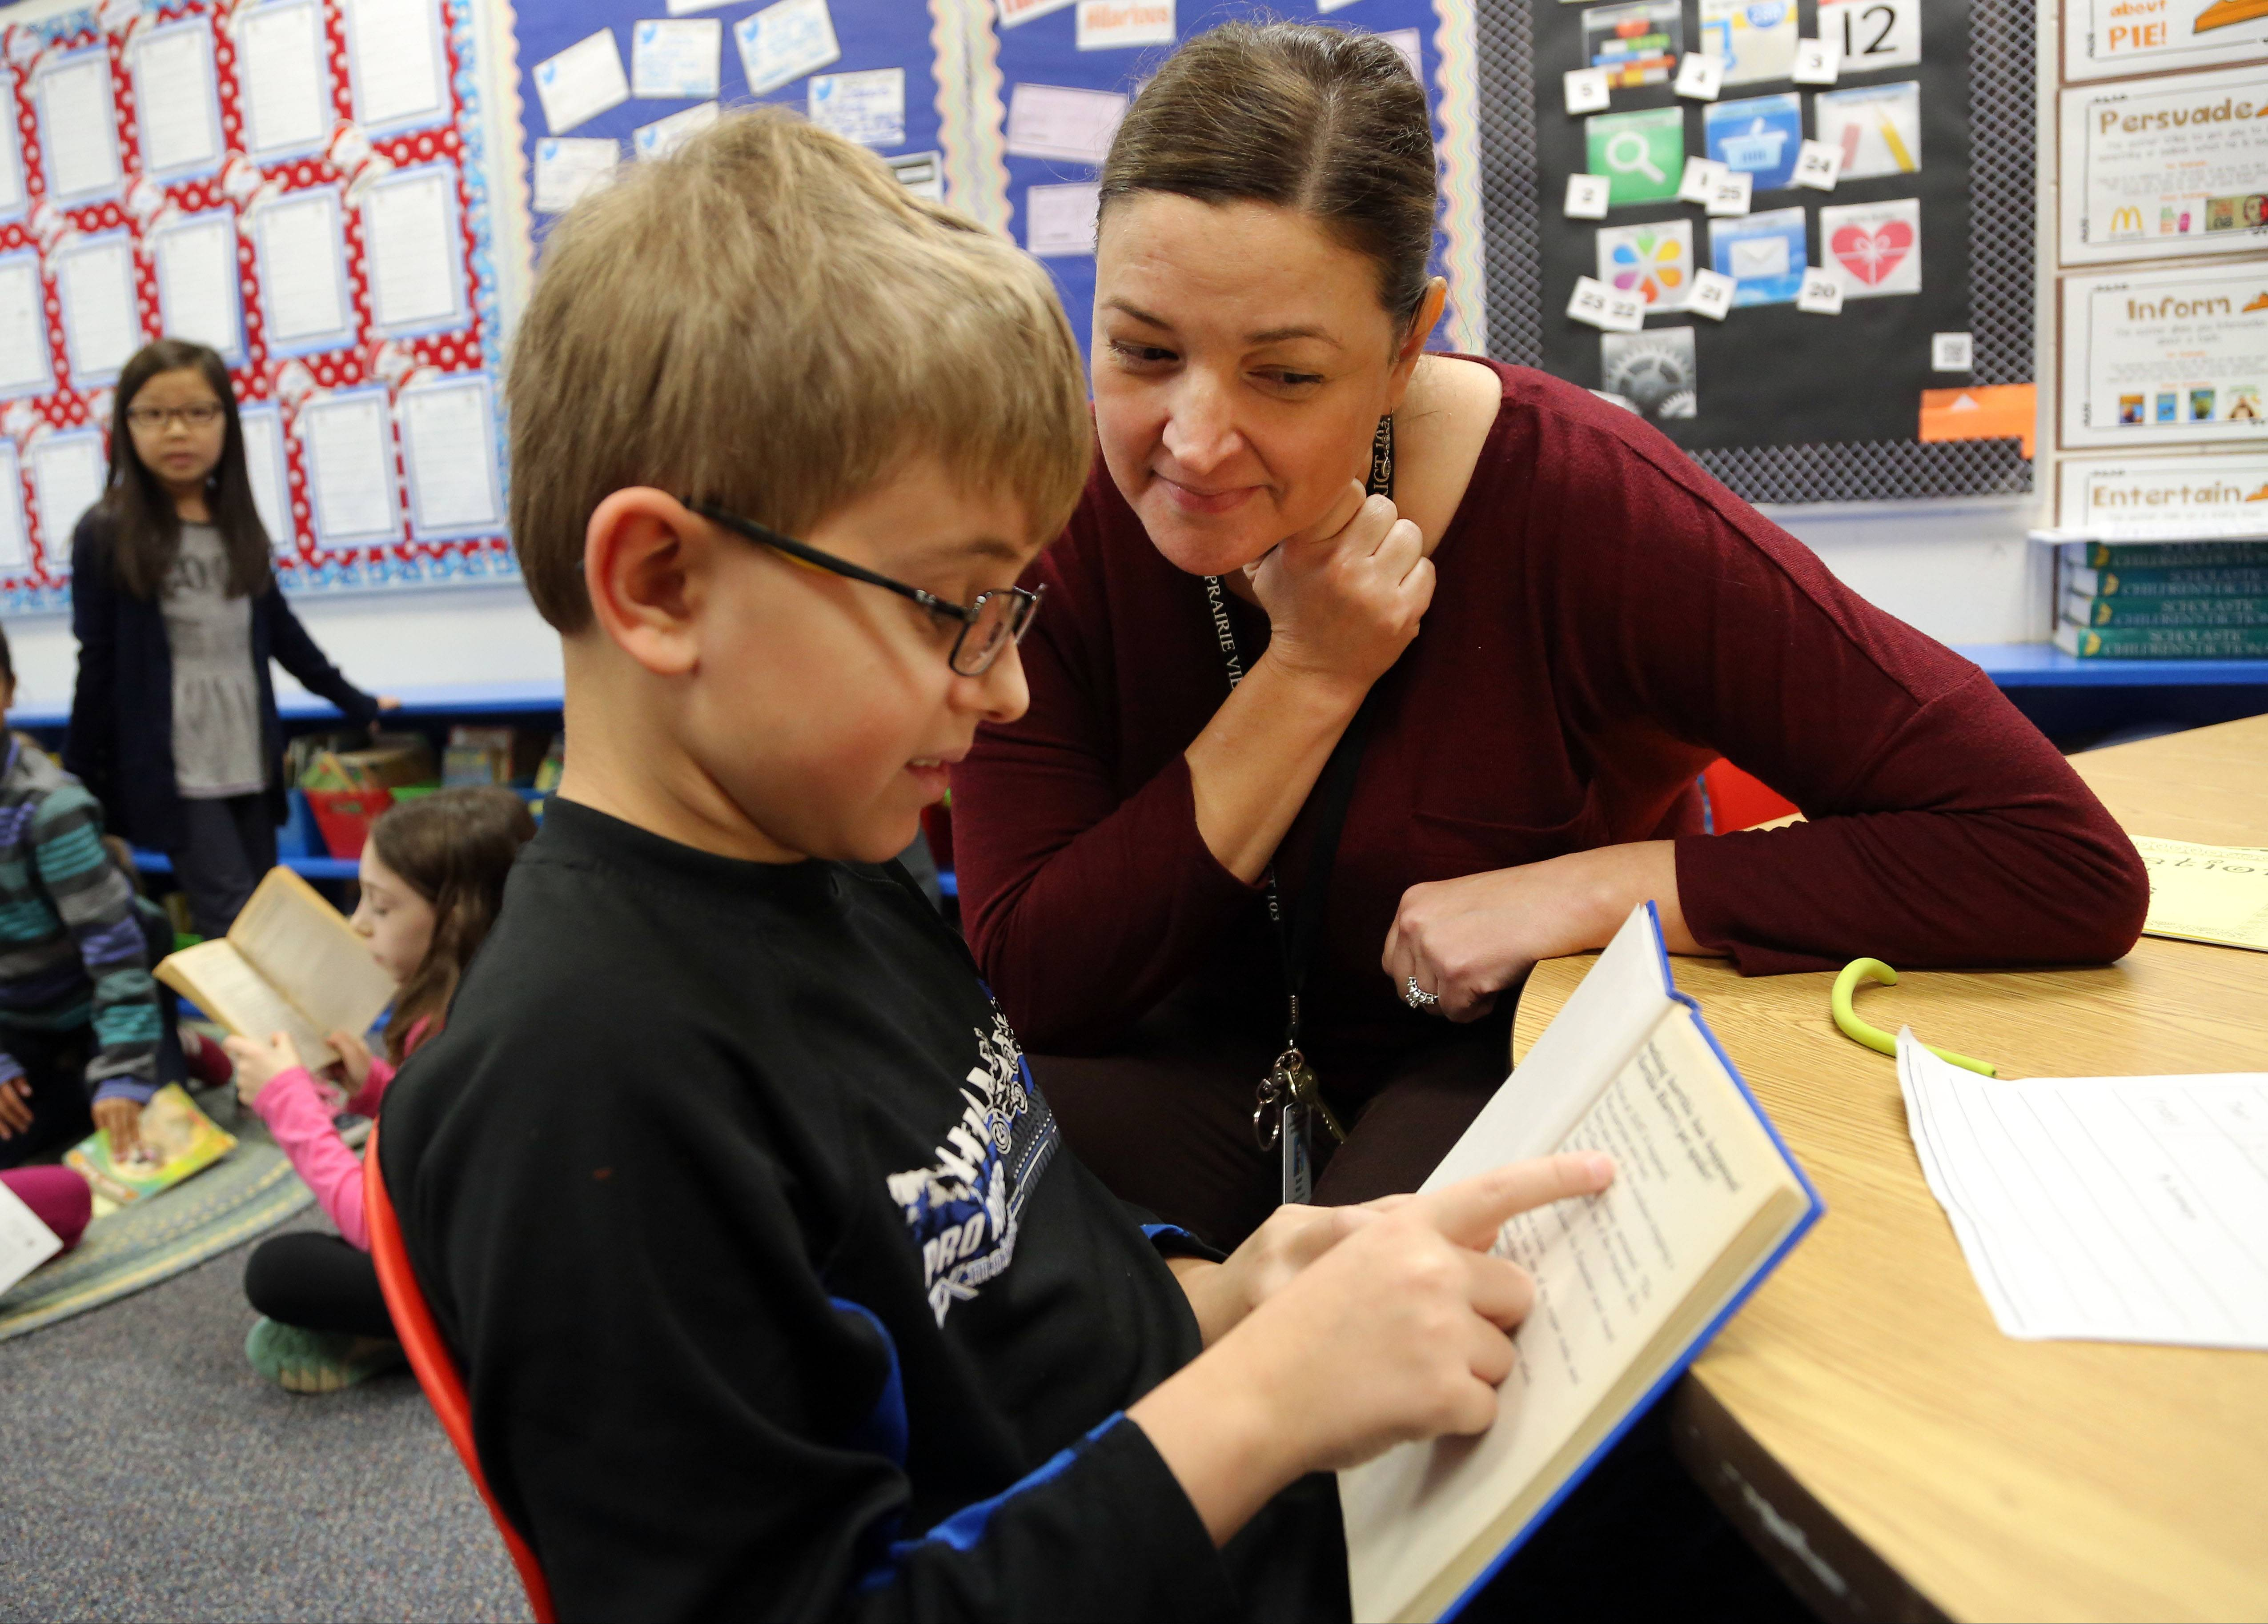 Lincolnshire, Buffalo Grove schools among top PARCC performers